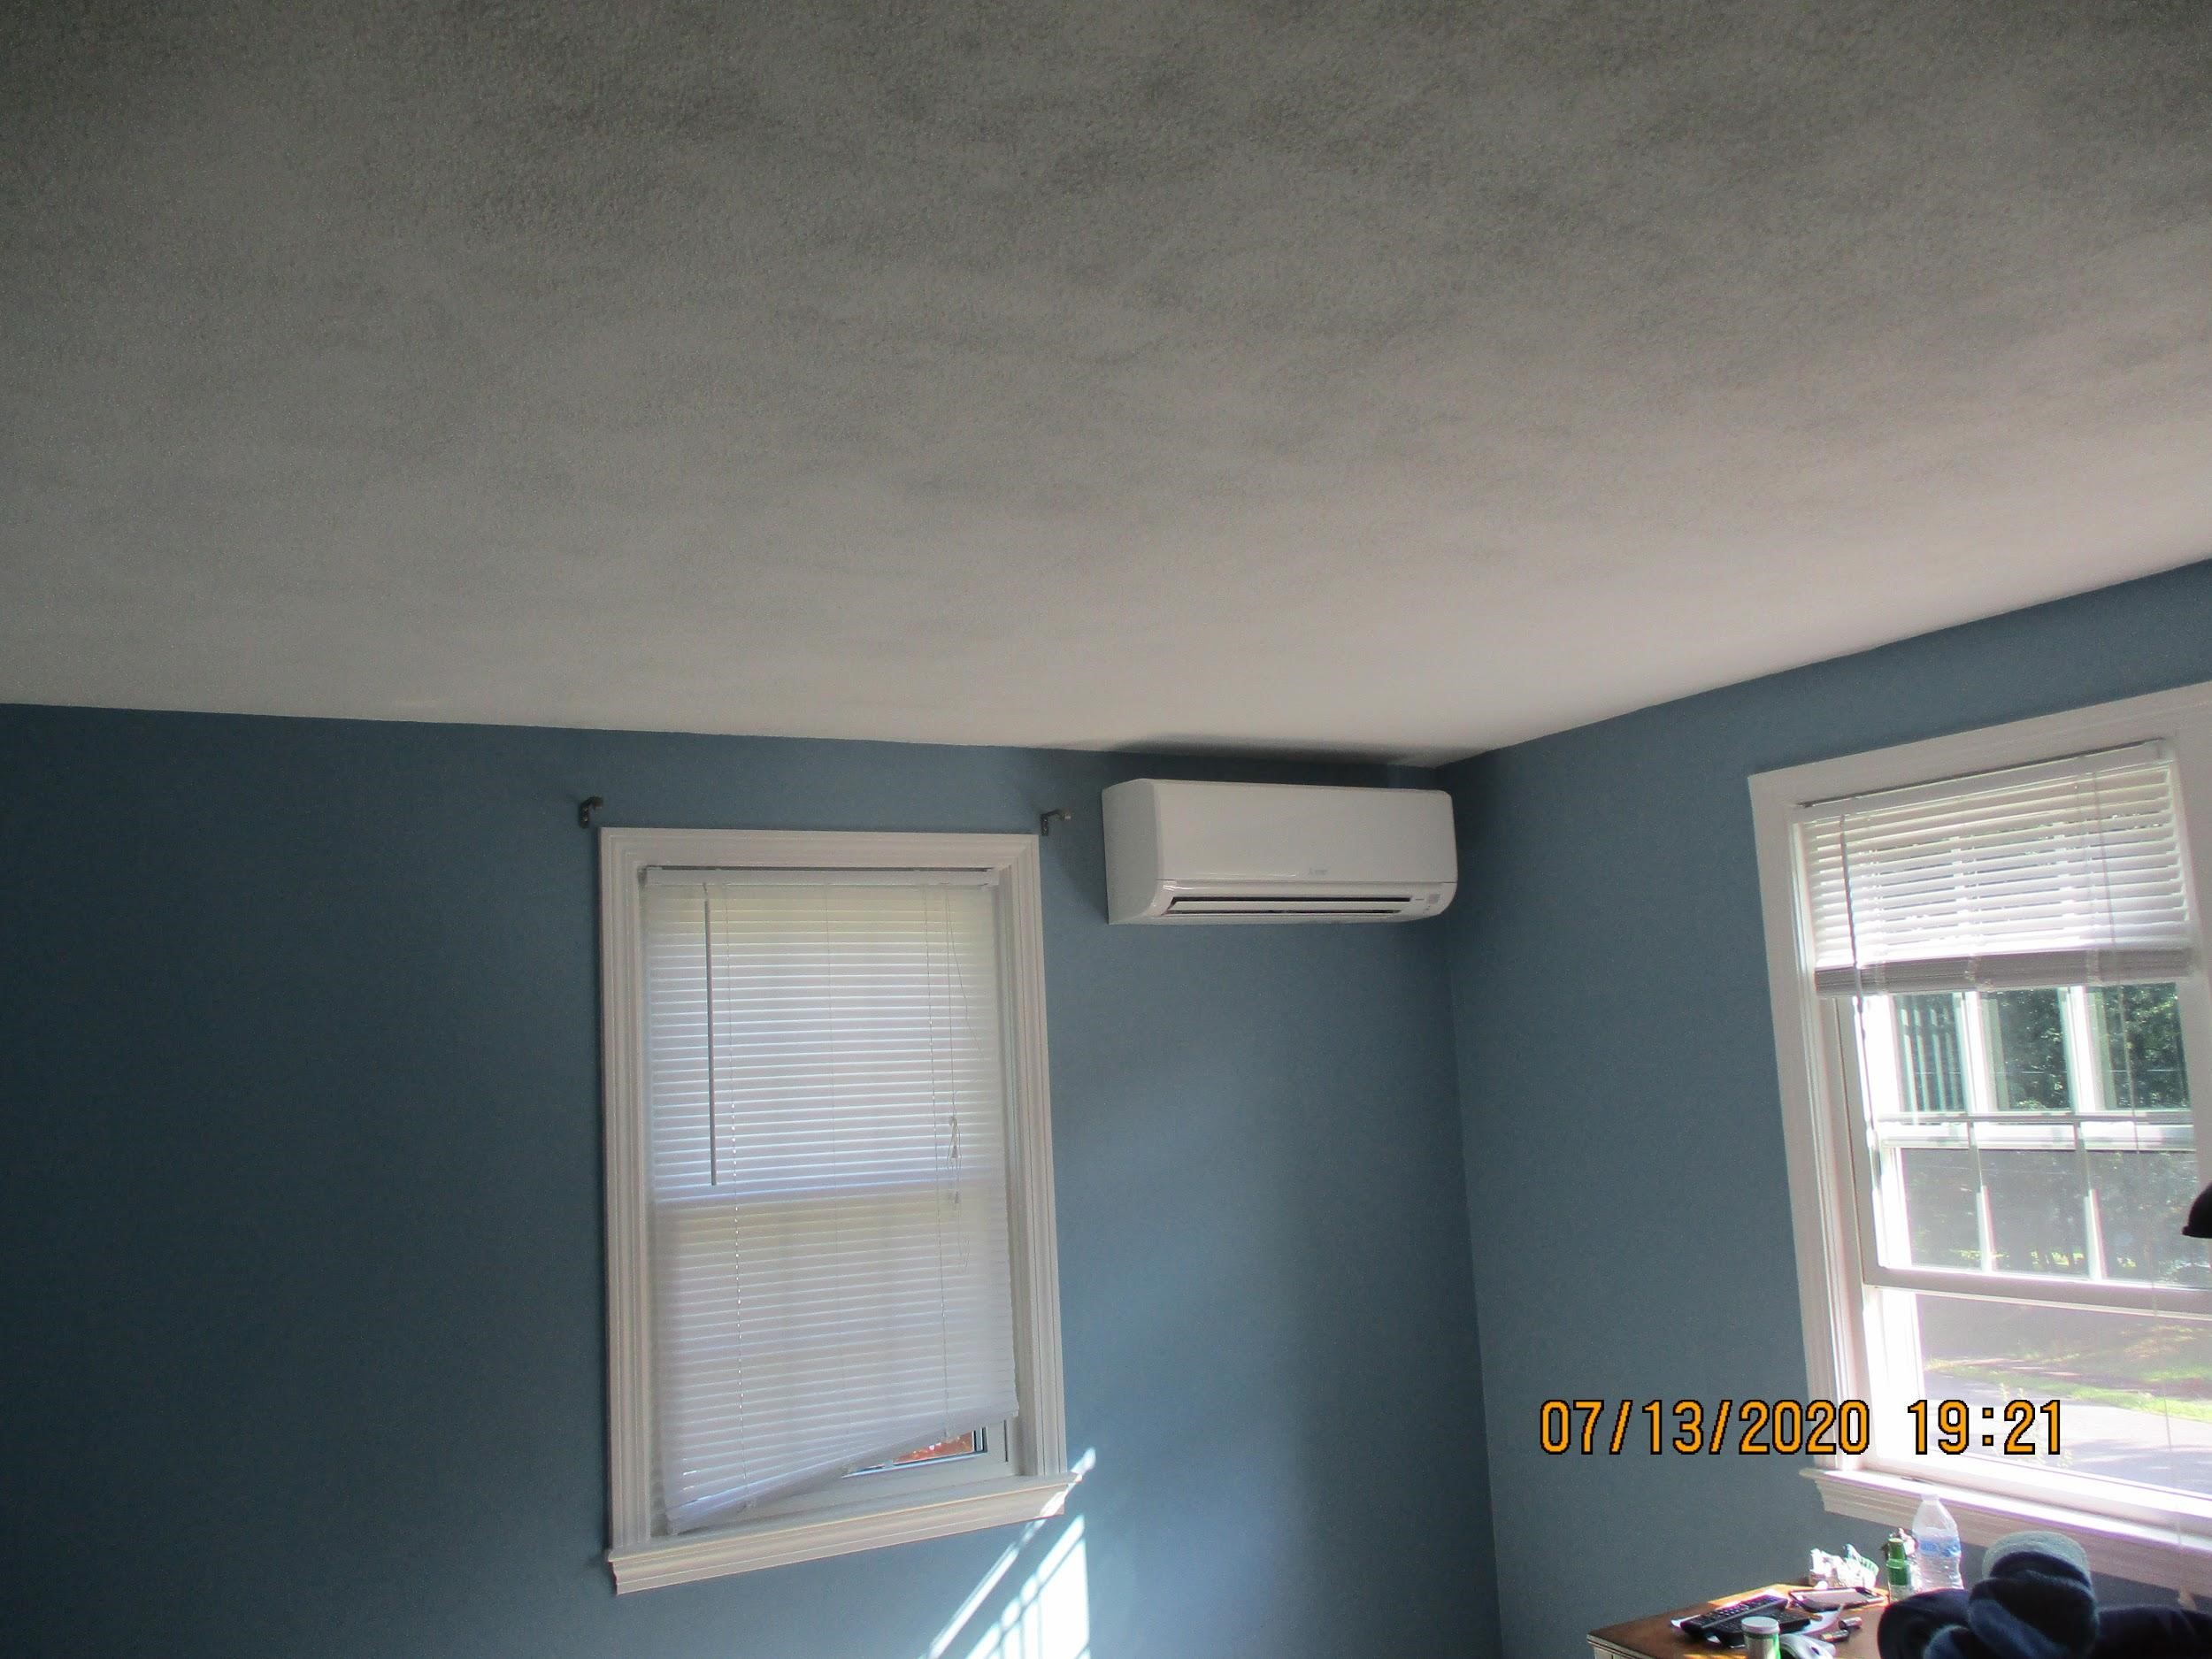 Example of an indoor ductless AC for new Mitsubishi system in Framingham, MA, split-level home.